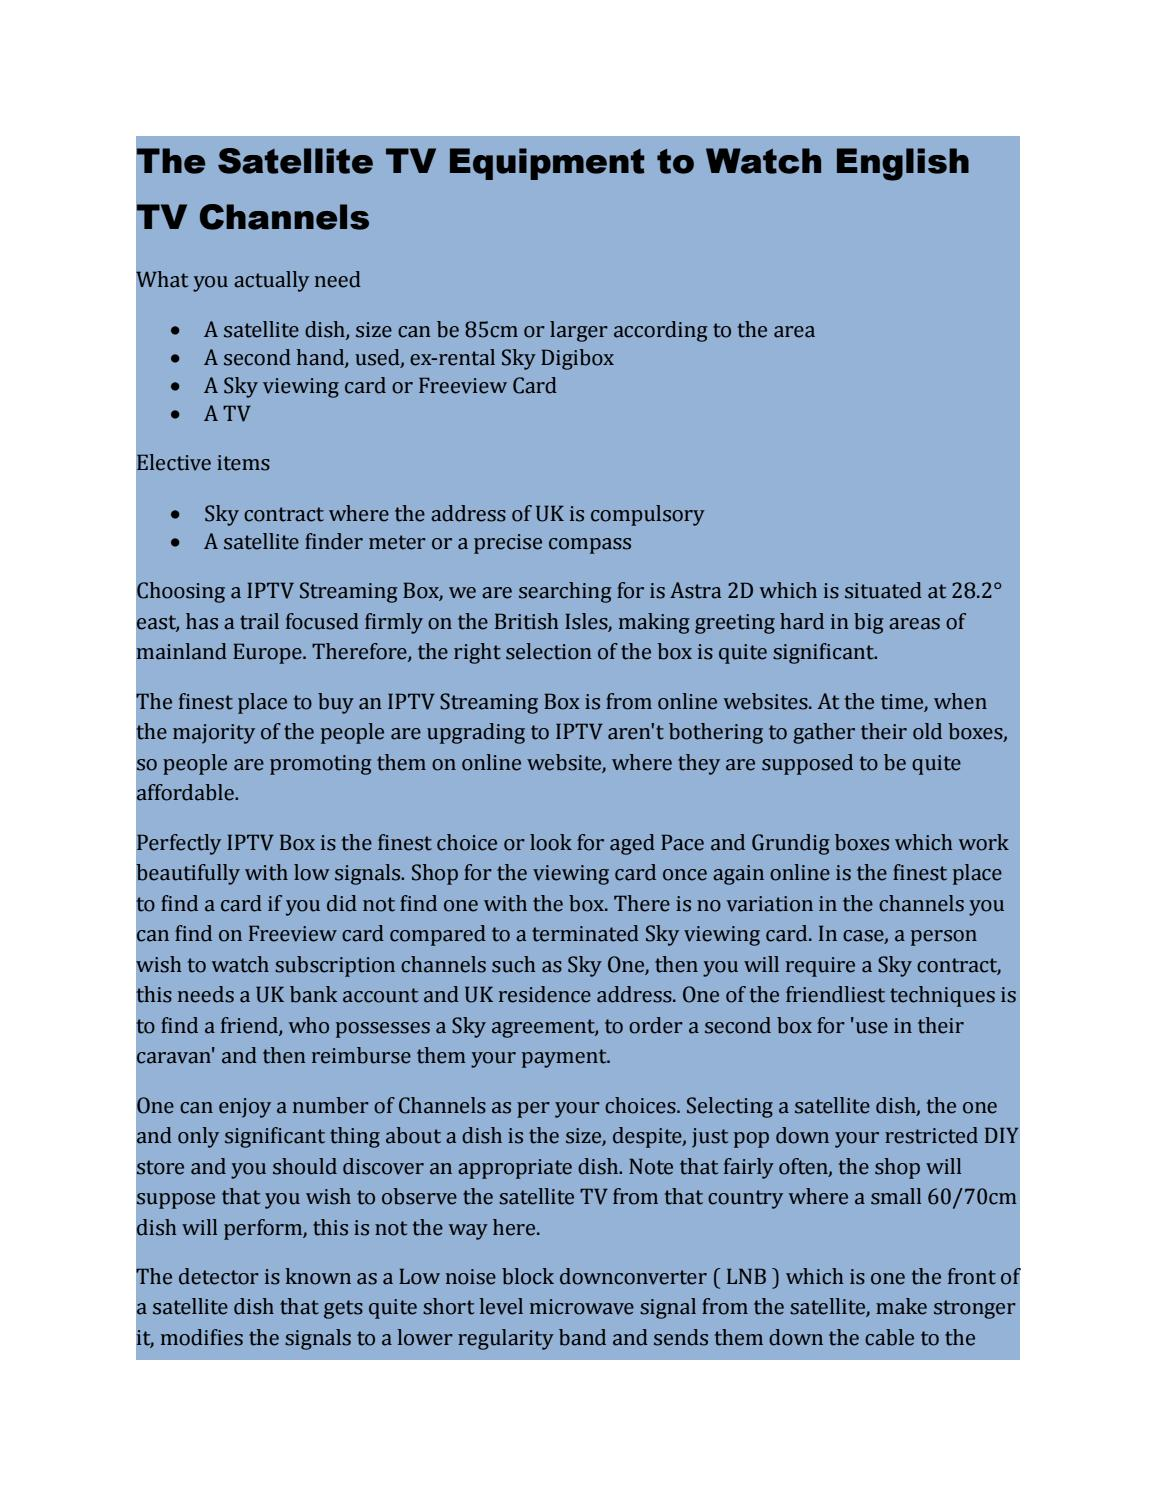 The Satellite TV Equipment to Watch English TV Channels by